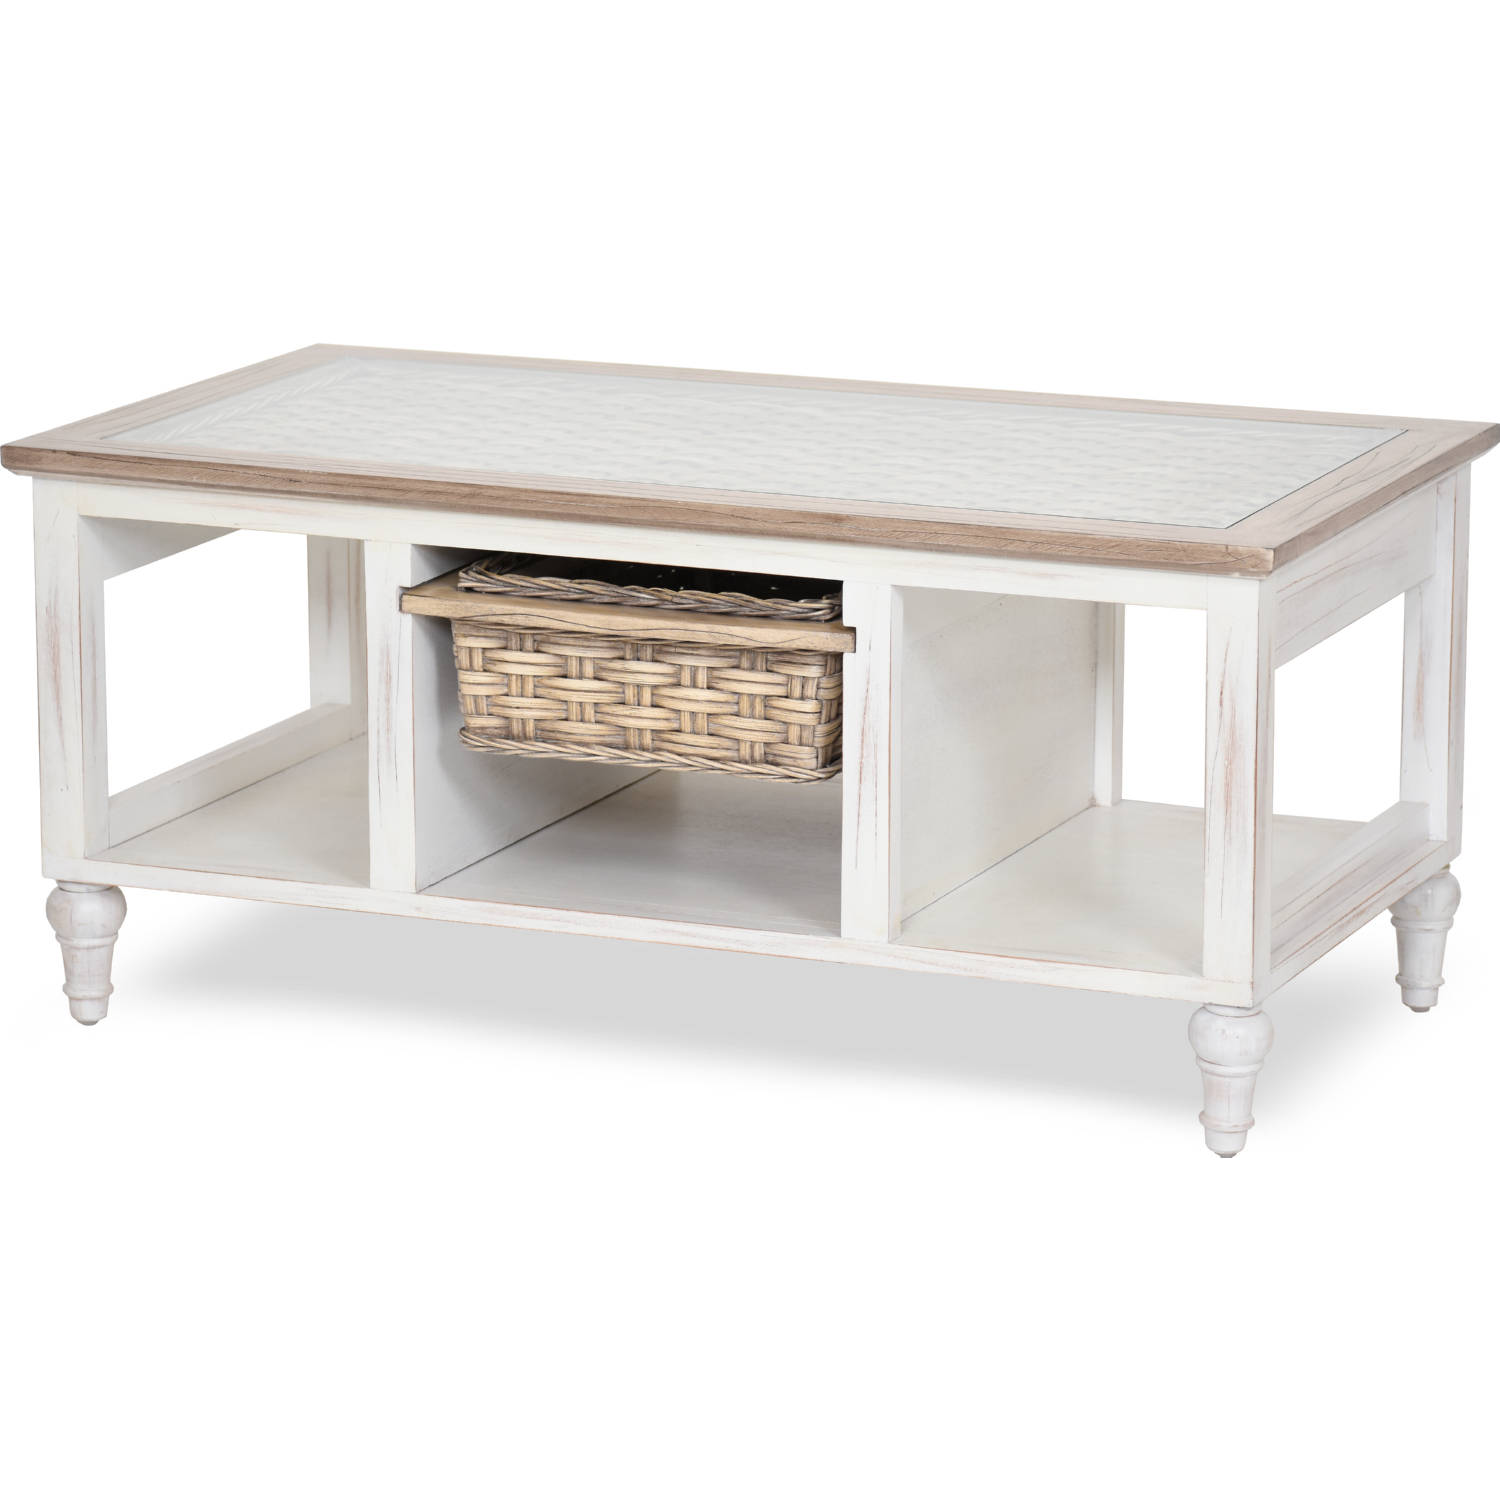 Details About New Large Weathered Reclaimed Wood 4 Drawer Coffee Table Furniture